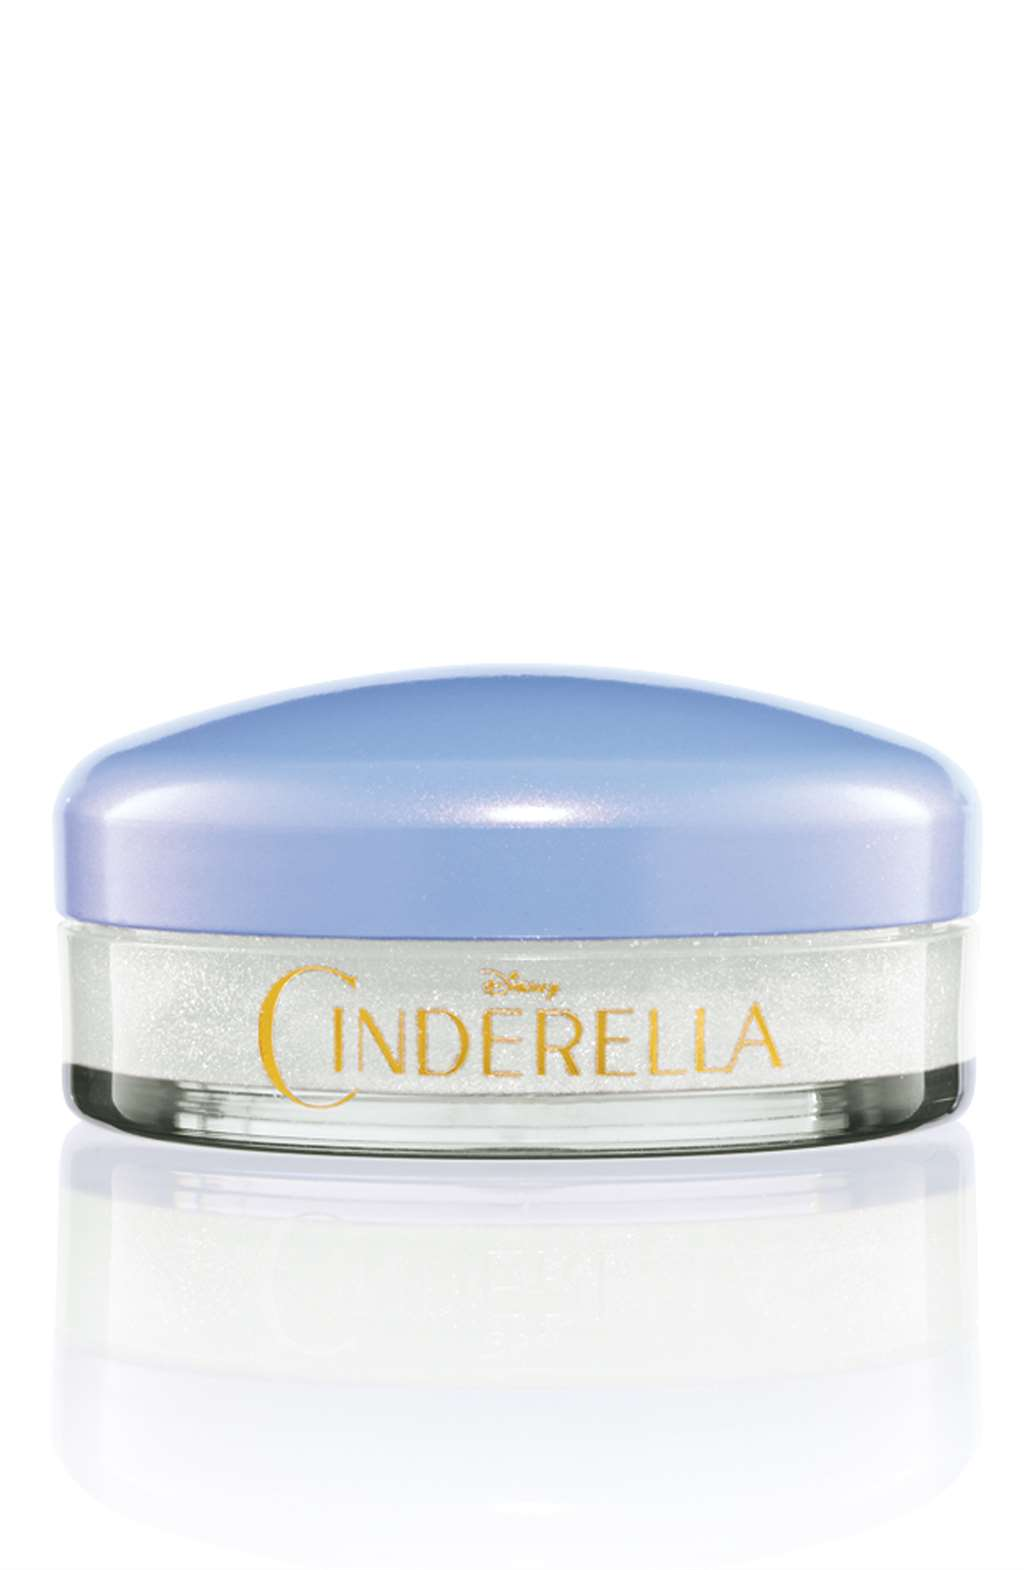 CINDERELLA_M.A.C STUDIO EYE GLOSS_PEARL VARNISH_300